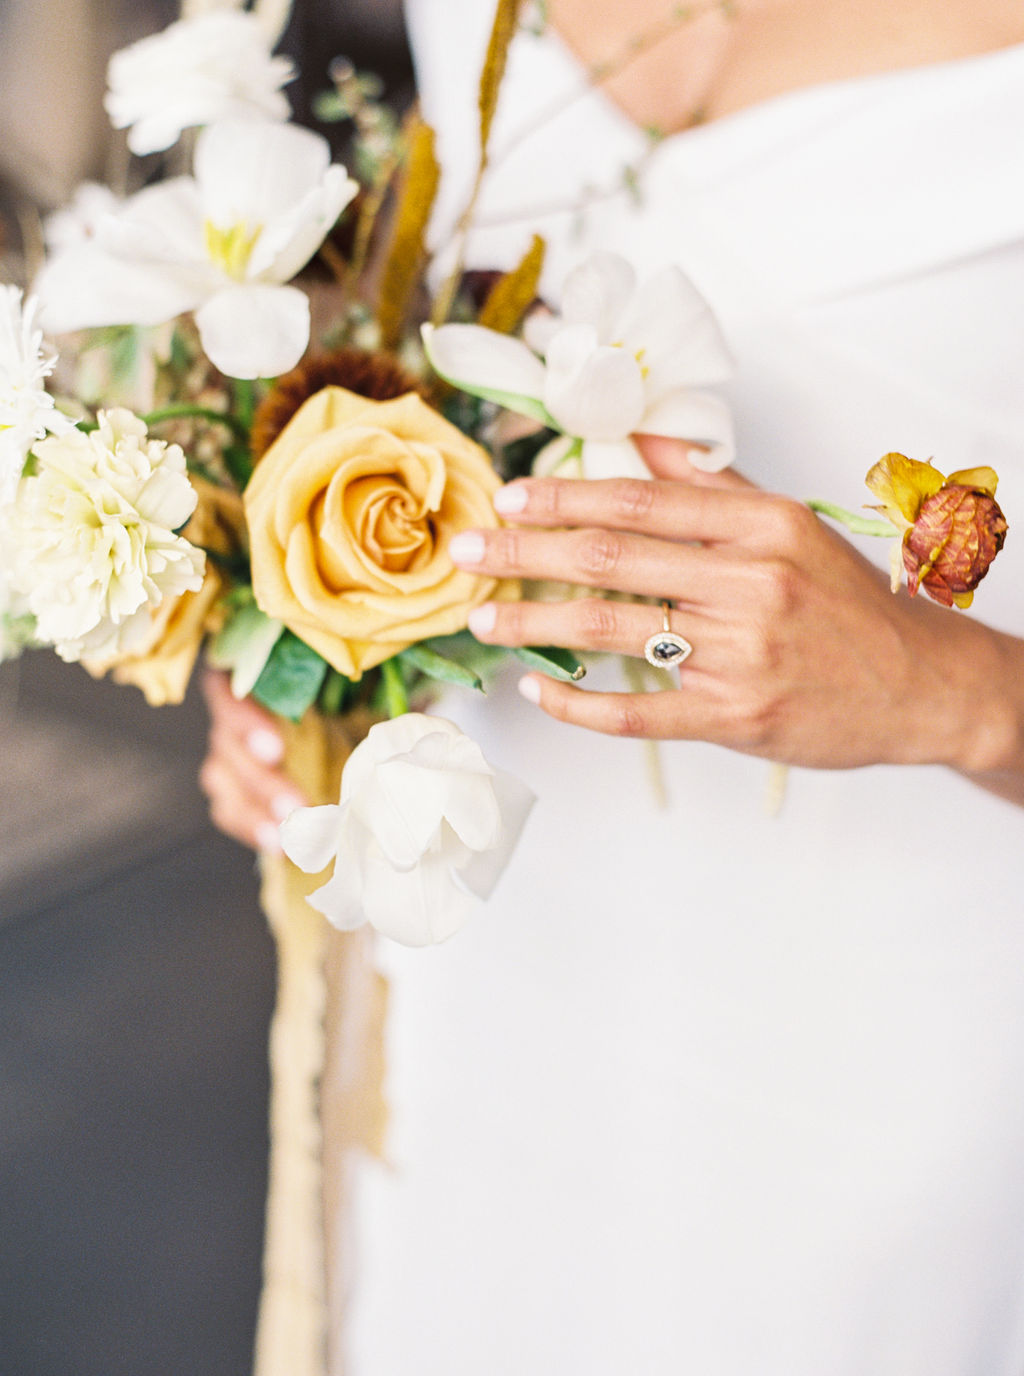 San Francisco Top wedding florist ASH + OAK